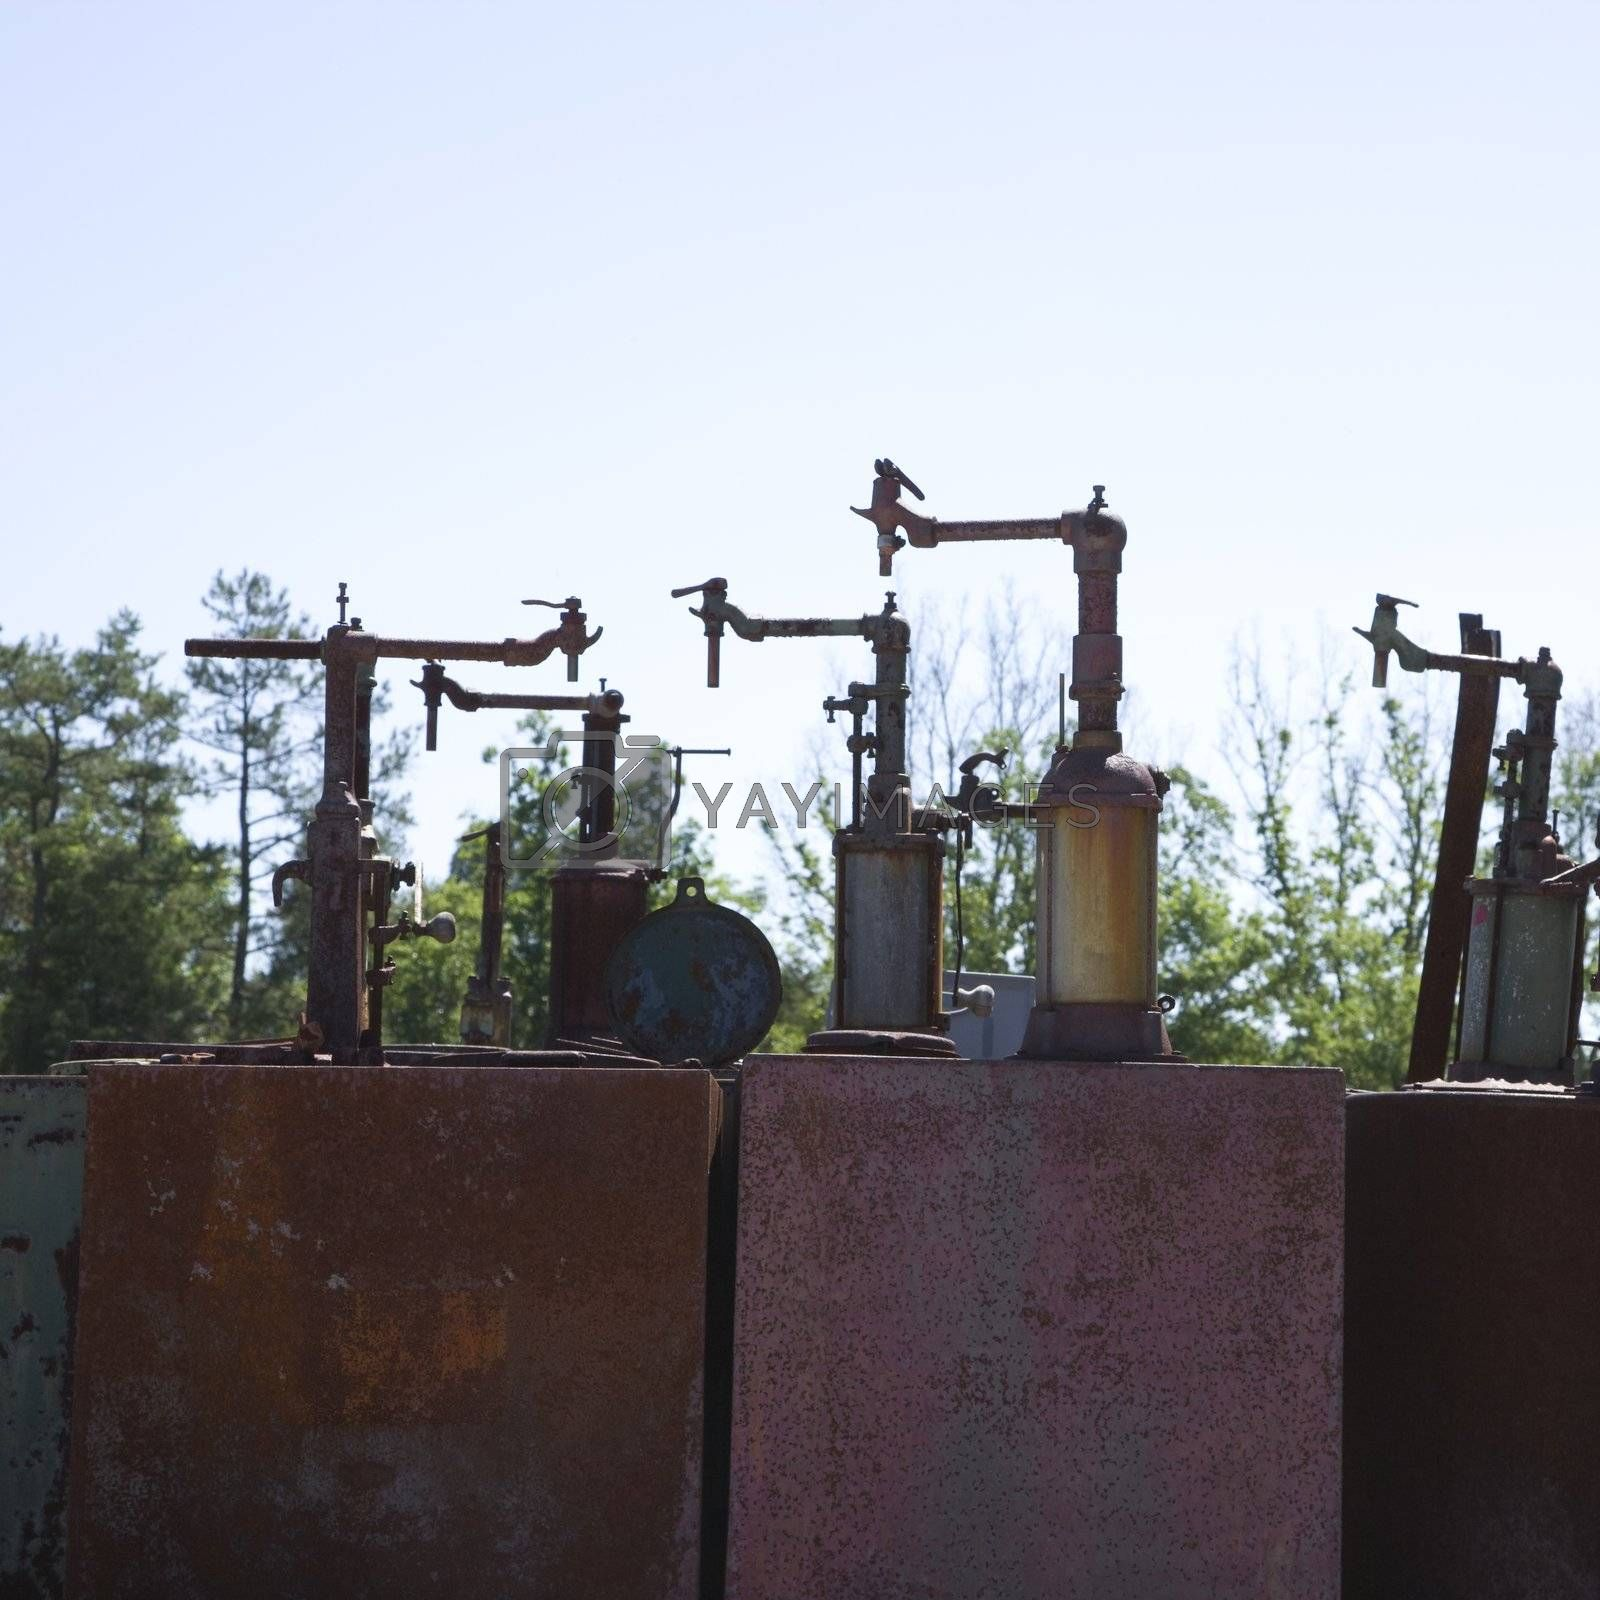 Old rusted metal machinery silhouetted against sky.